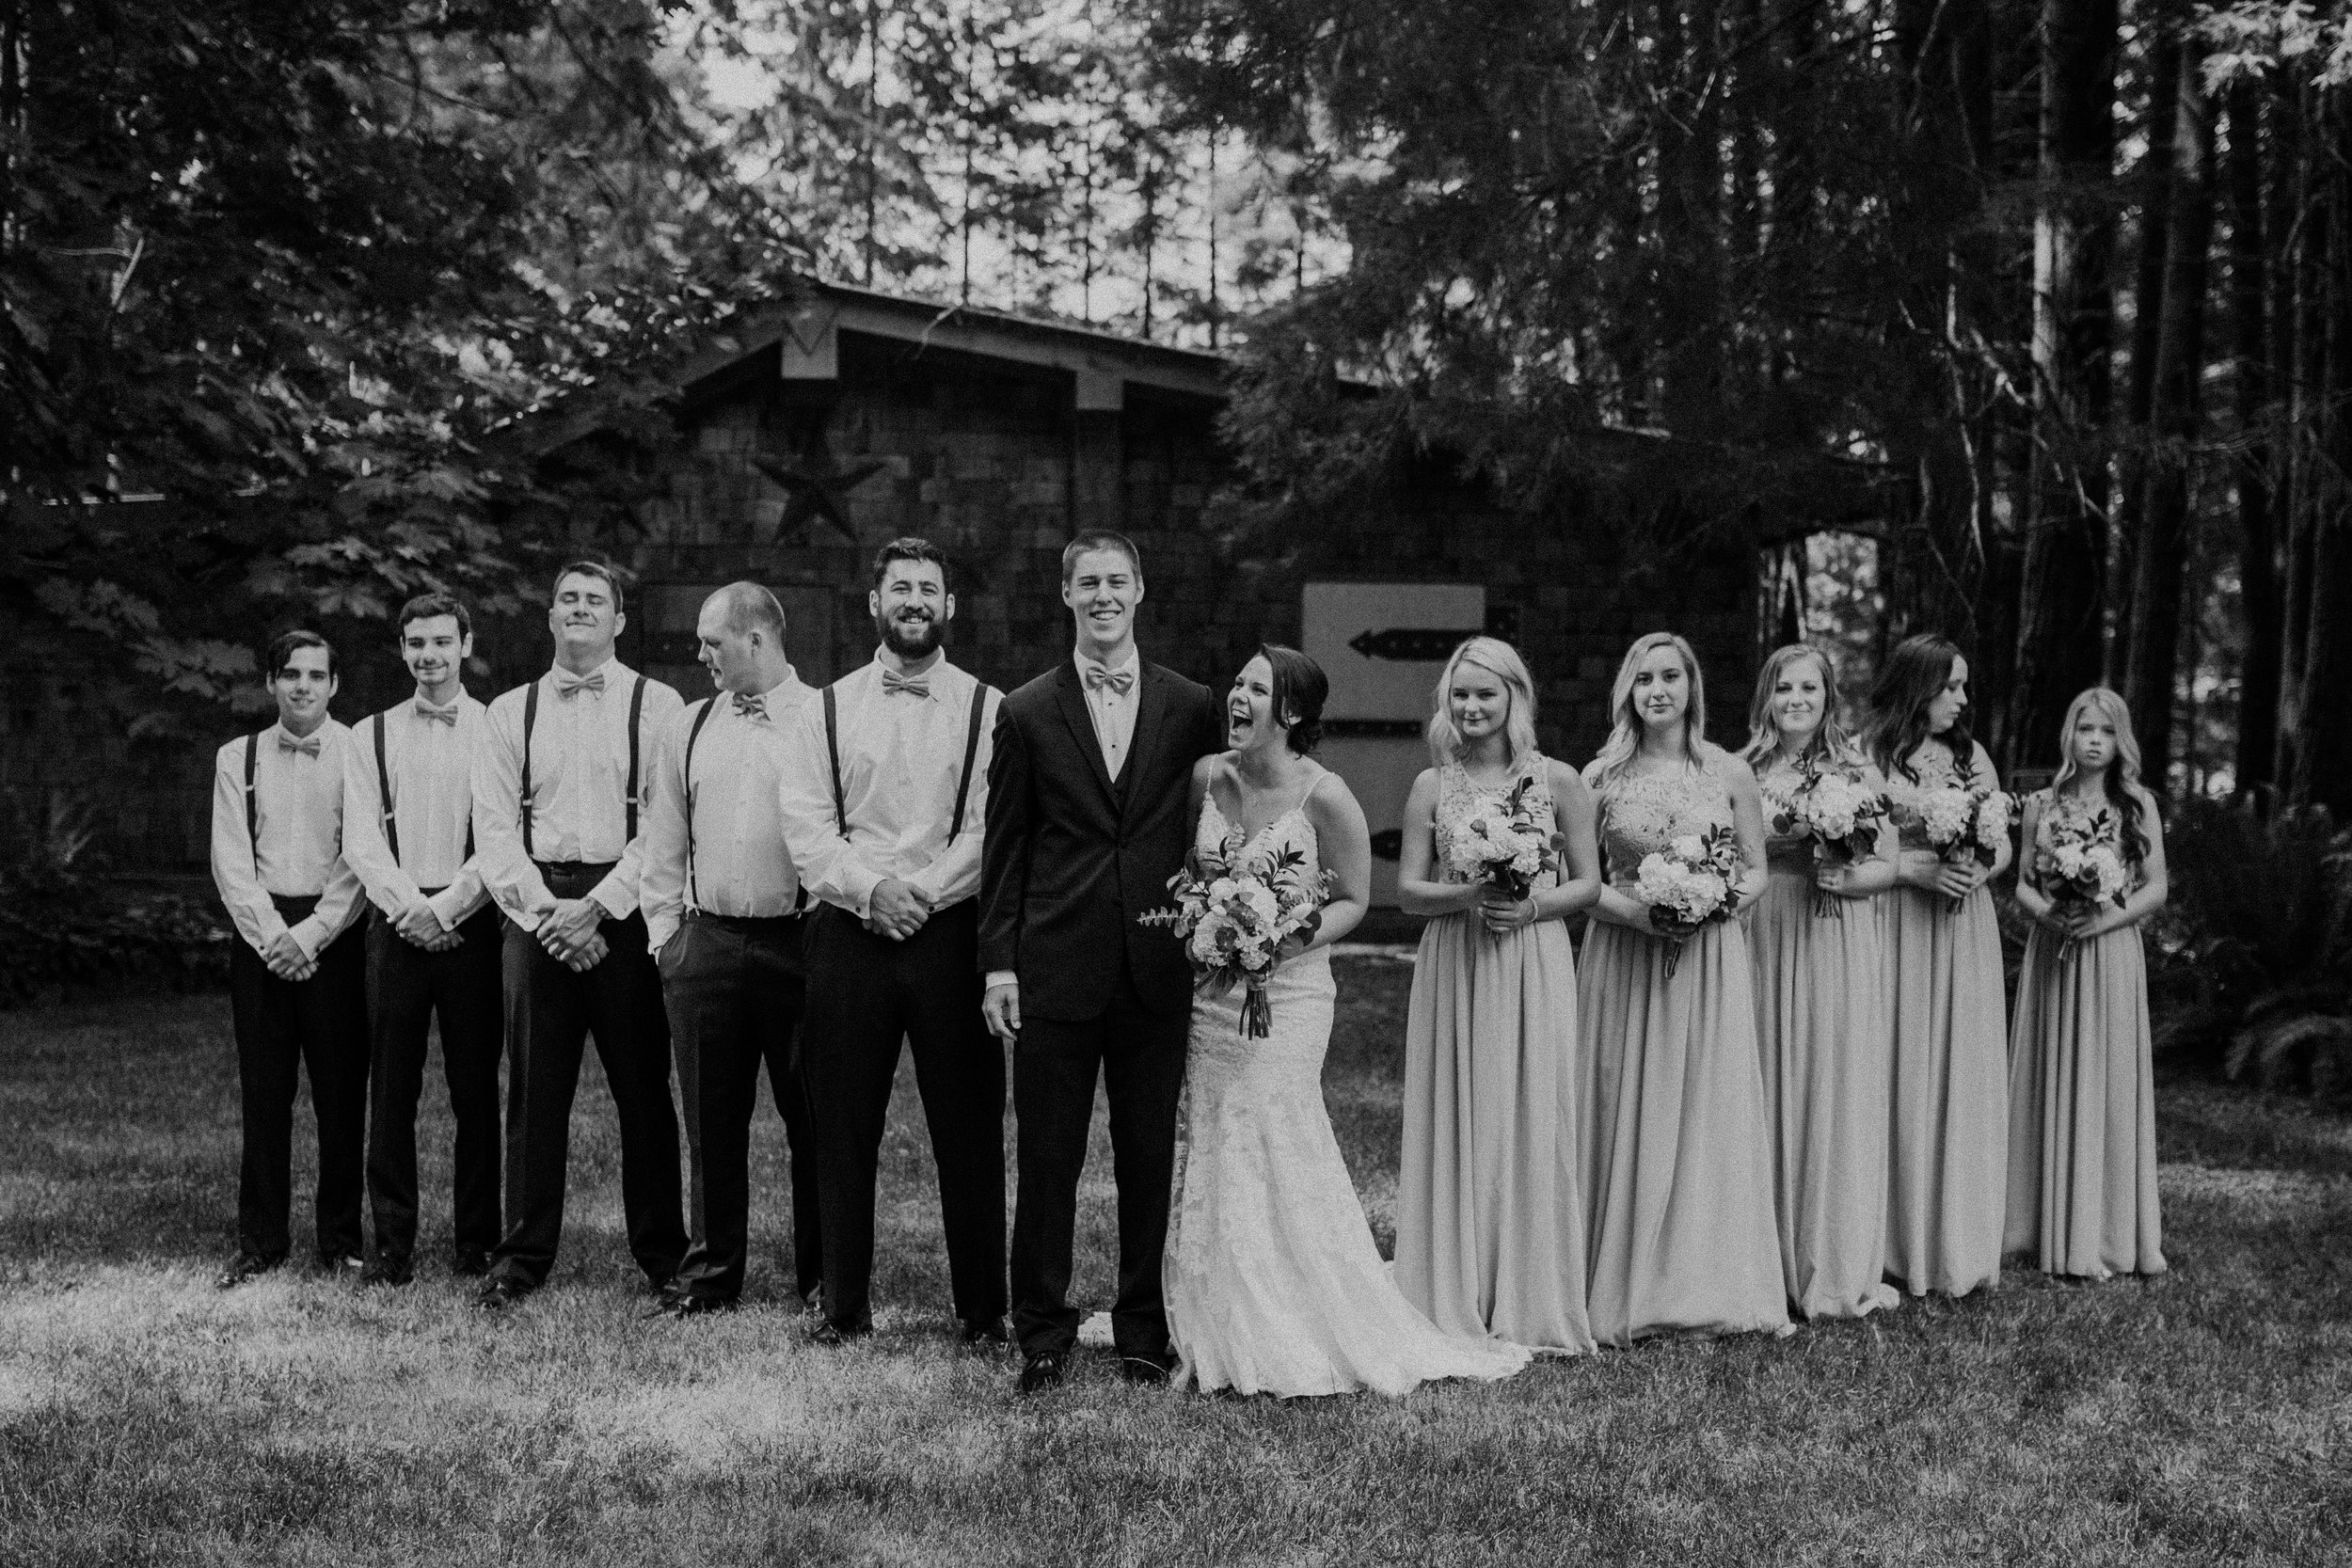 Shaynah Vandegriffe Photography | Eugene, Oregon wedding photographer | Deep Woods Events Wedding | Oregon Bride